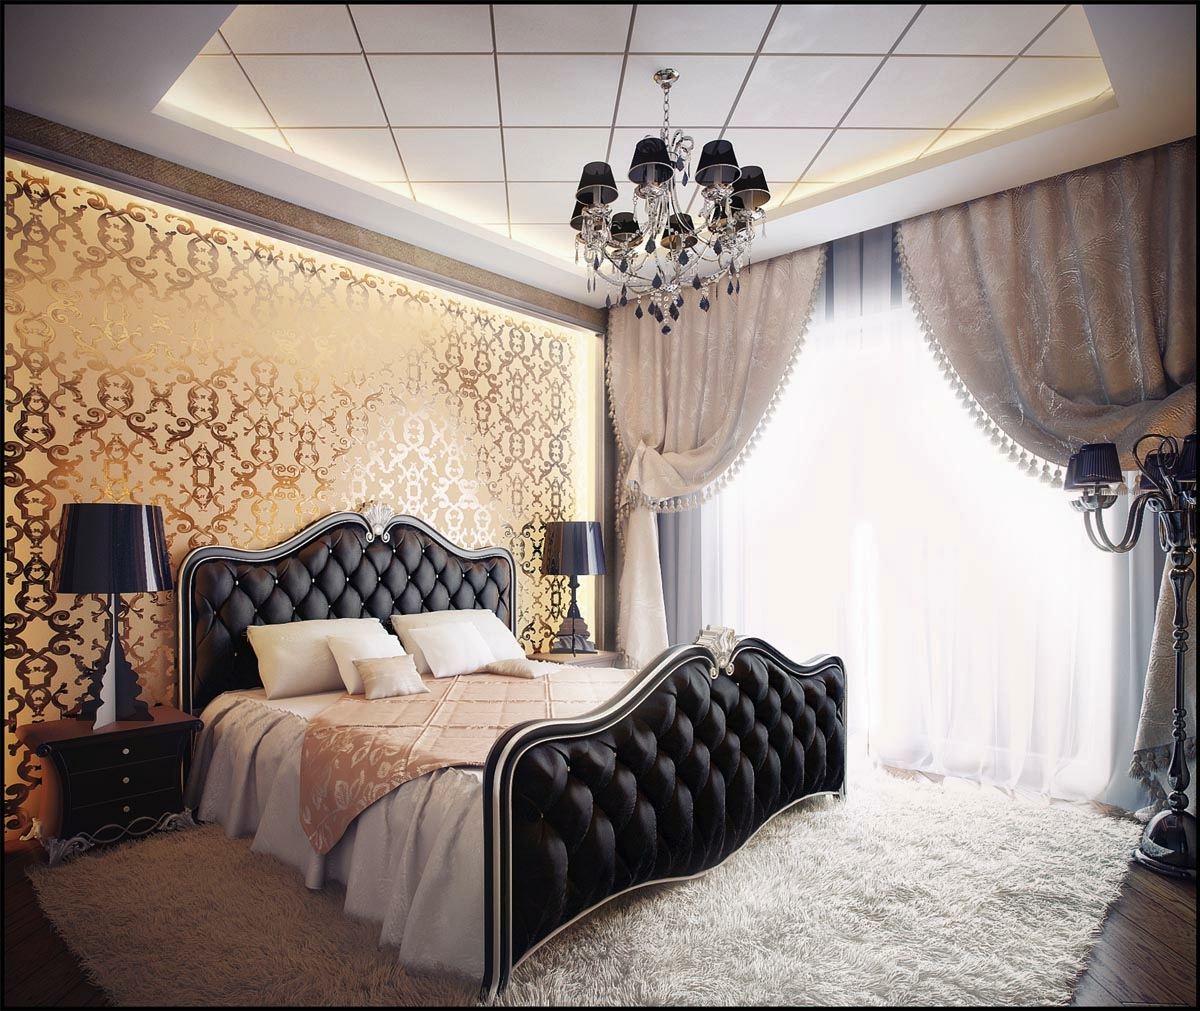 Black and gold bedroom design – Giving a Luxury Themed Bedroom